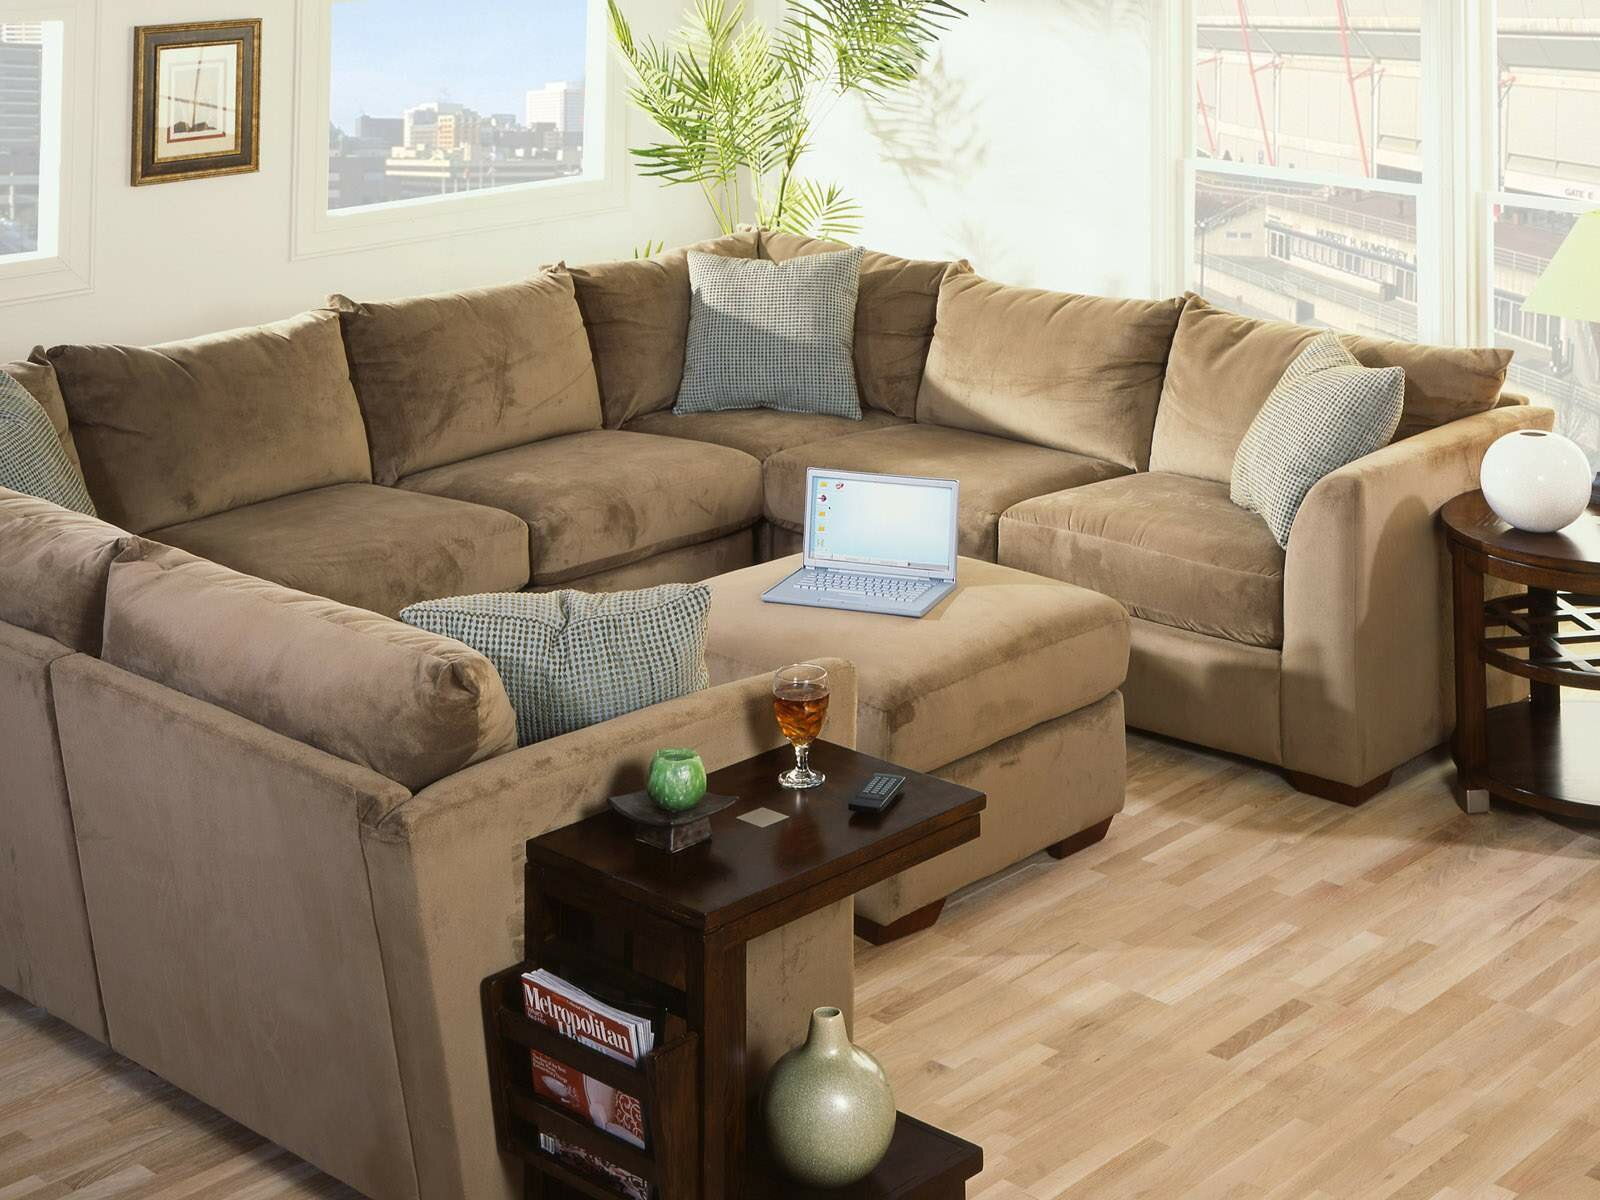 15 really beautiful sofa designs and ideas for Living room ideas tan sofa